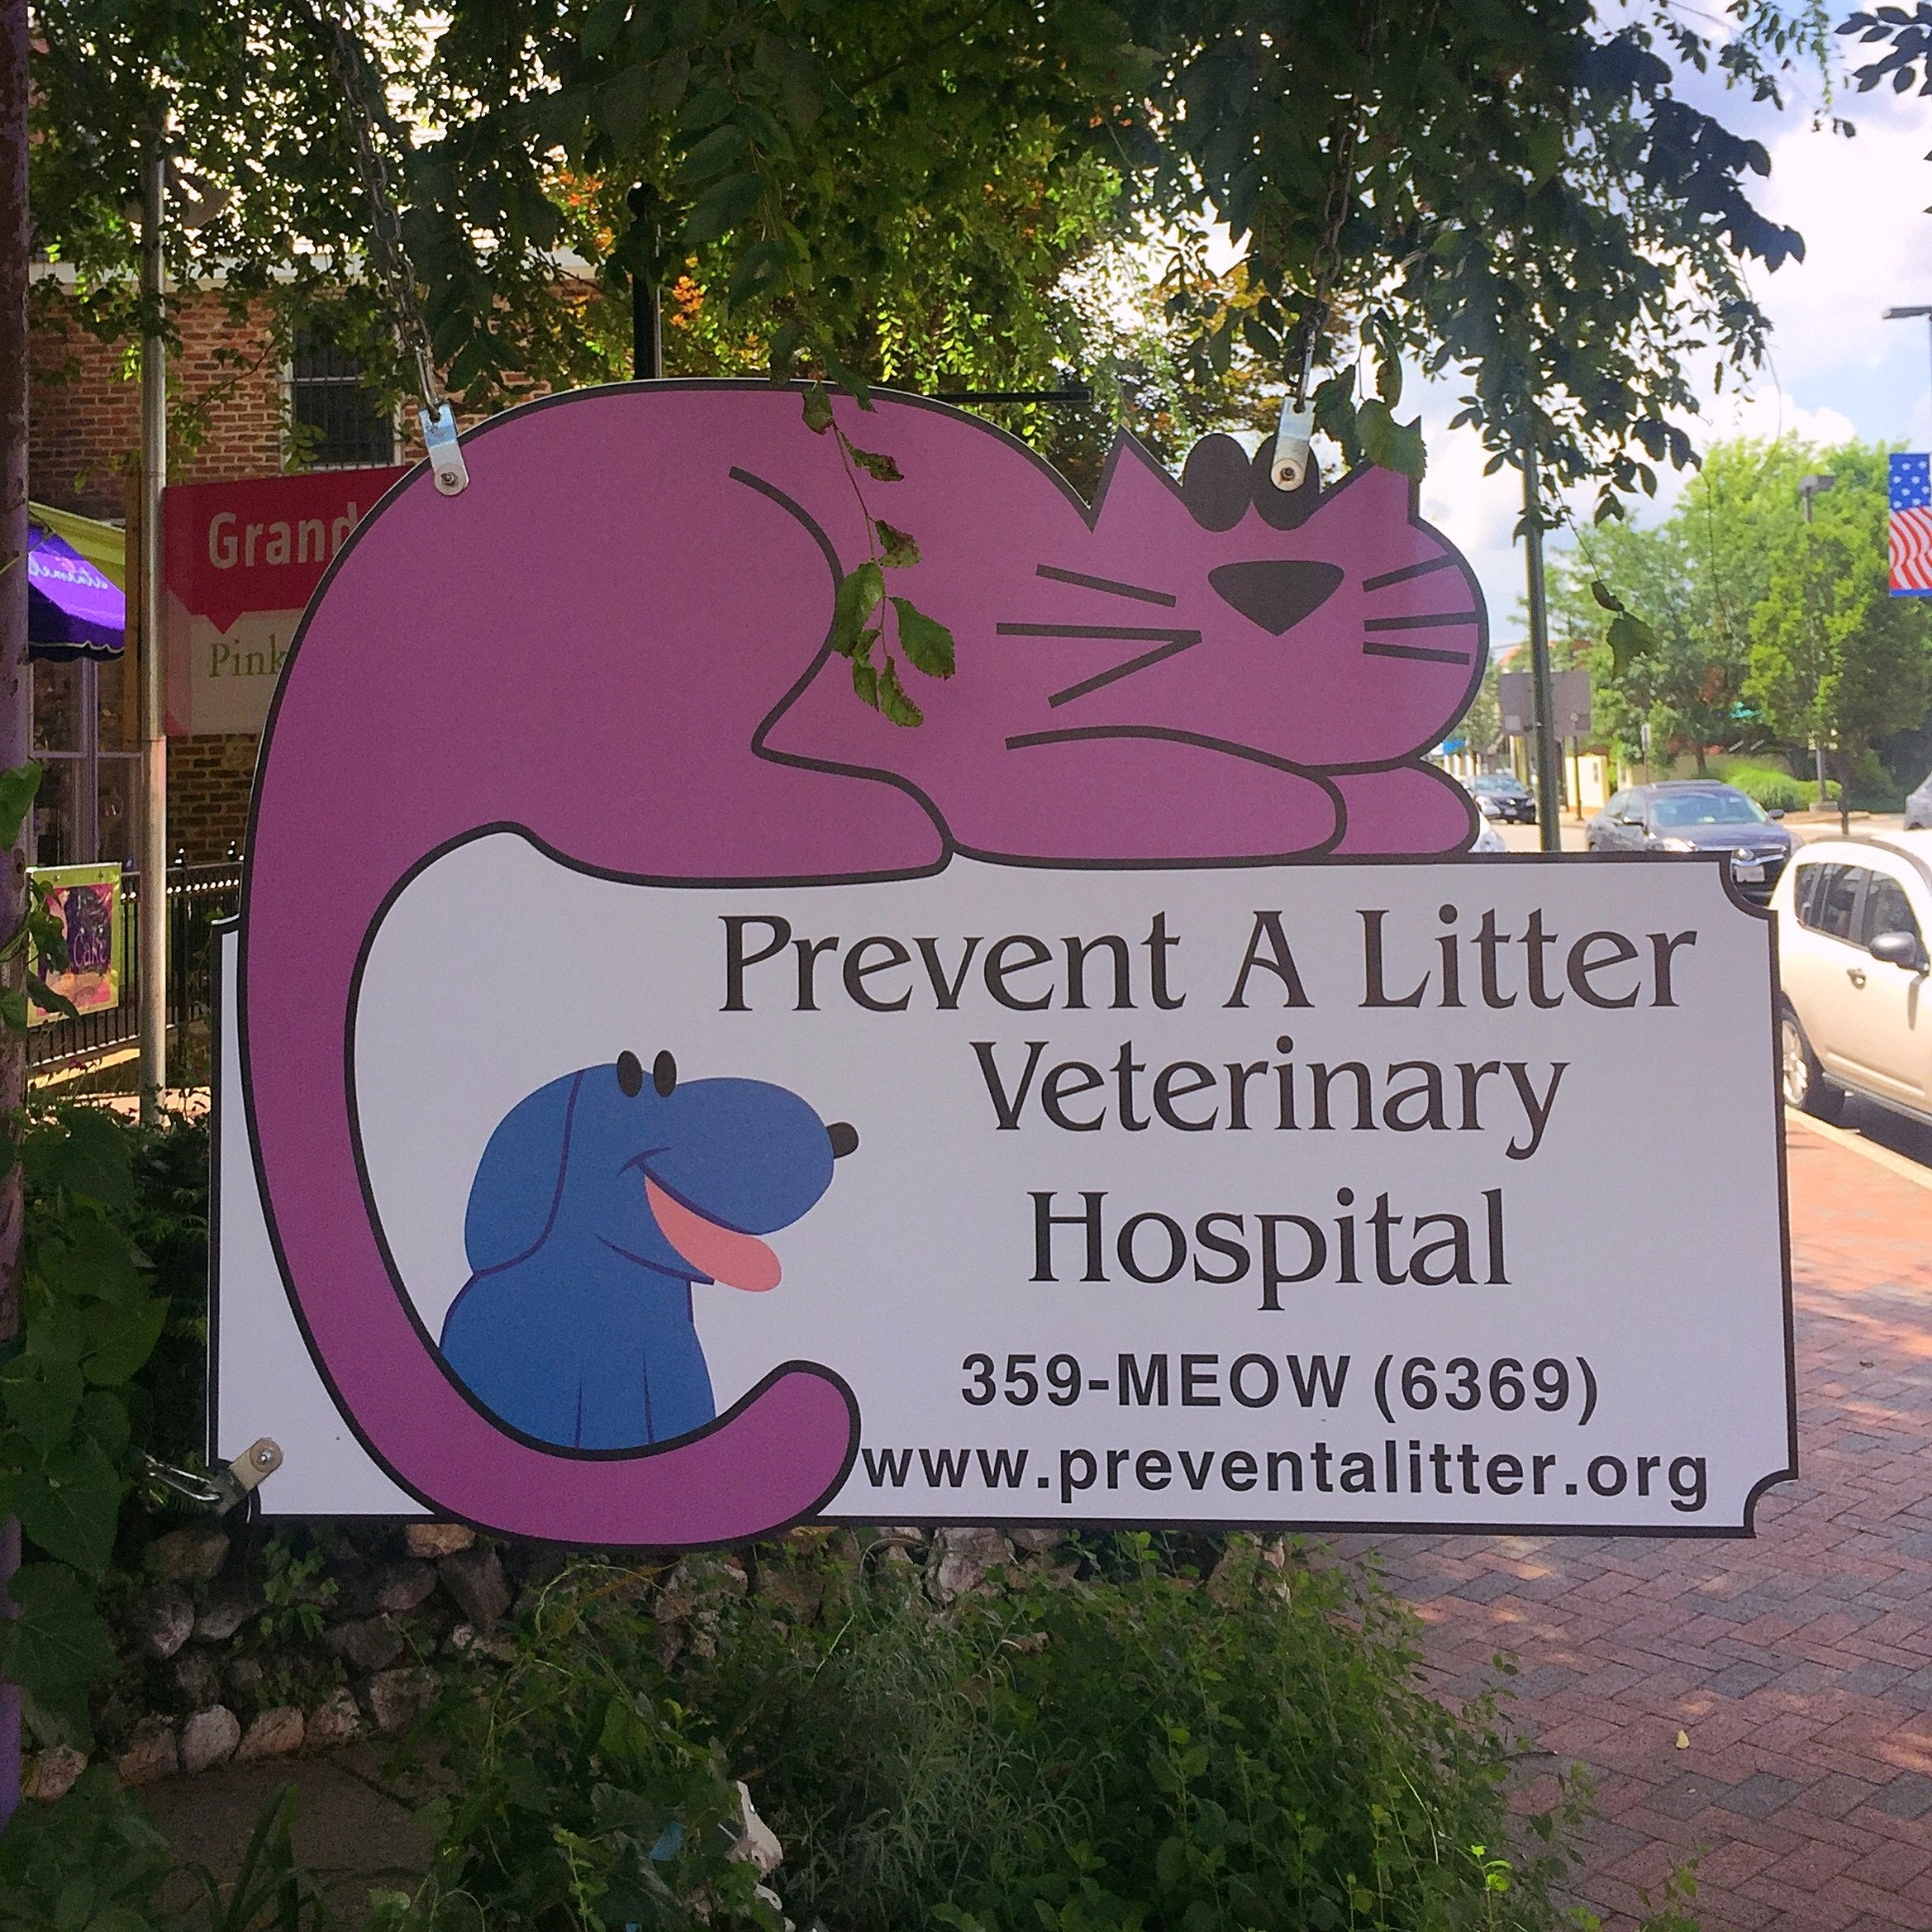 Prevent A Litter Veterinary Hospital